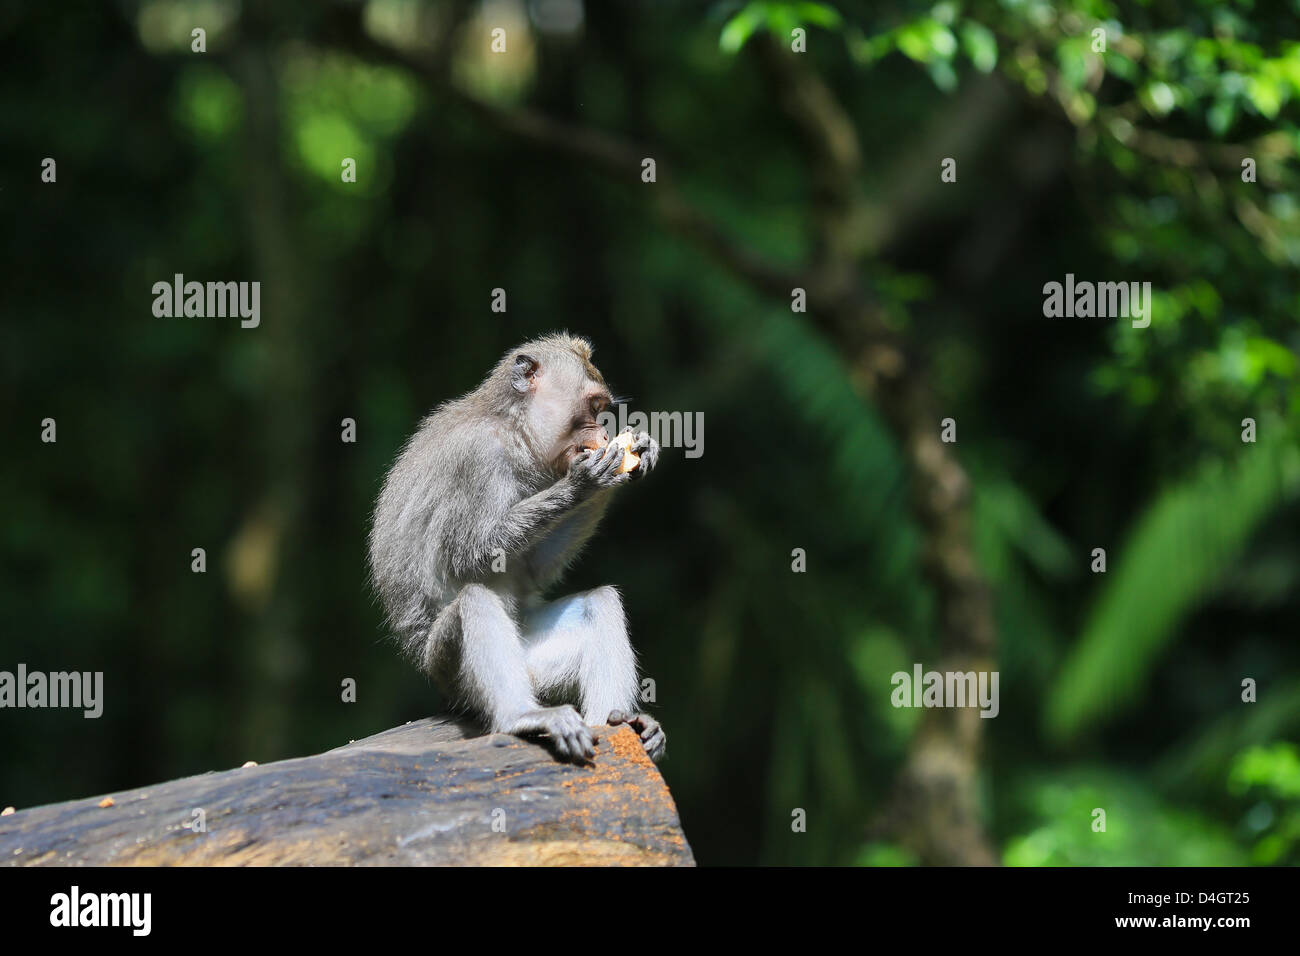 Crab-eating macaque eating a fruit in Ubud Monkey forest sanctuary in Bali, Indonesia - Stock Image